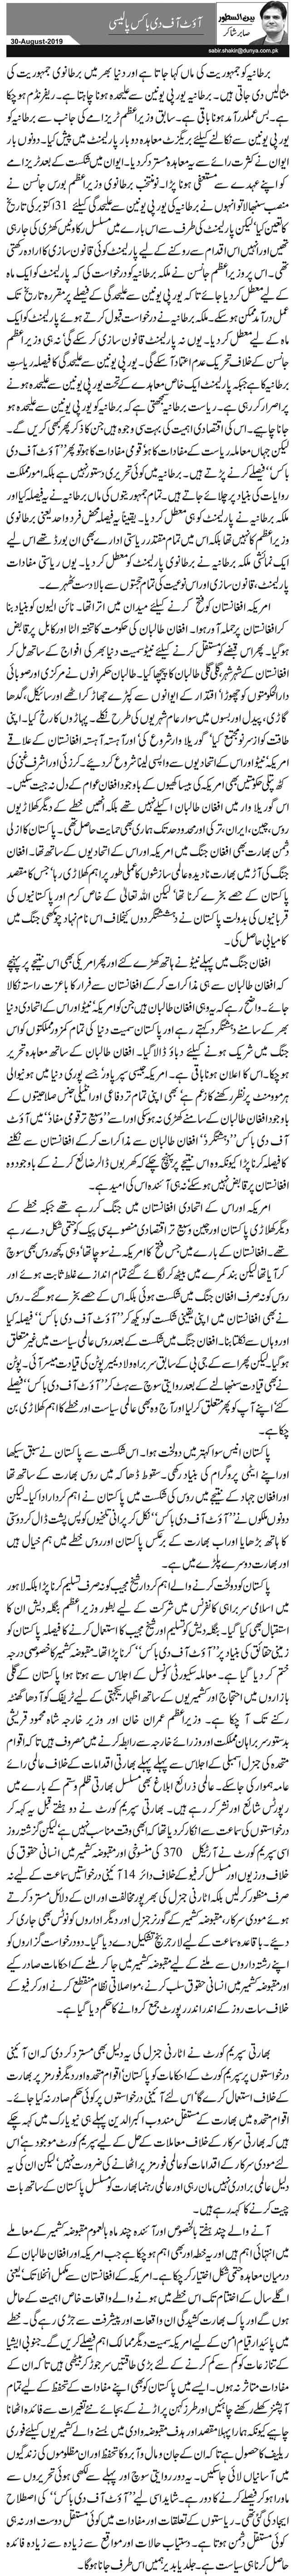 Sabir Shakir column 30 August 2019